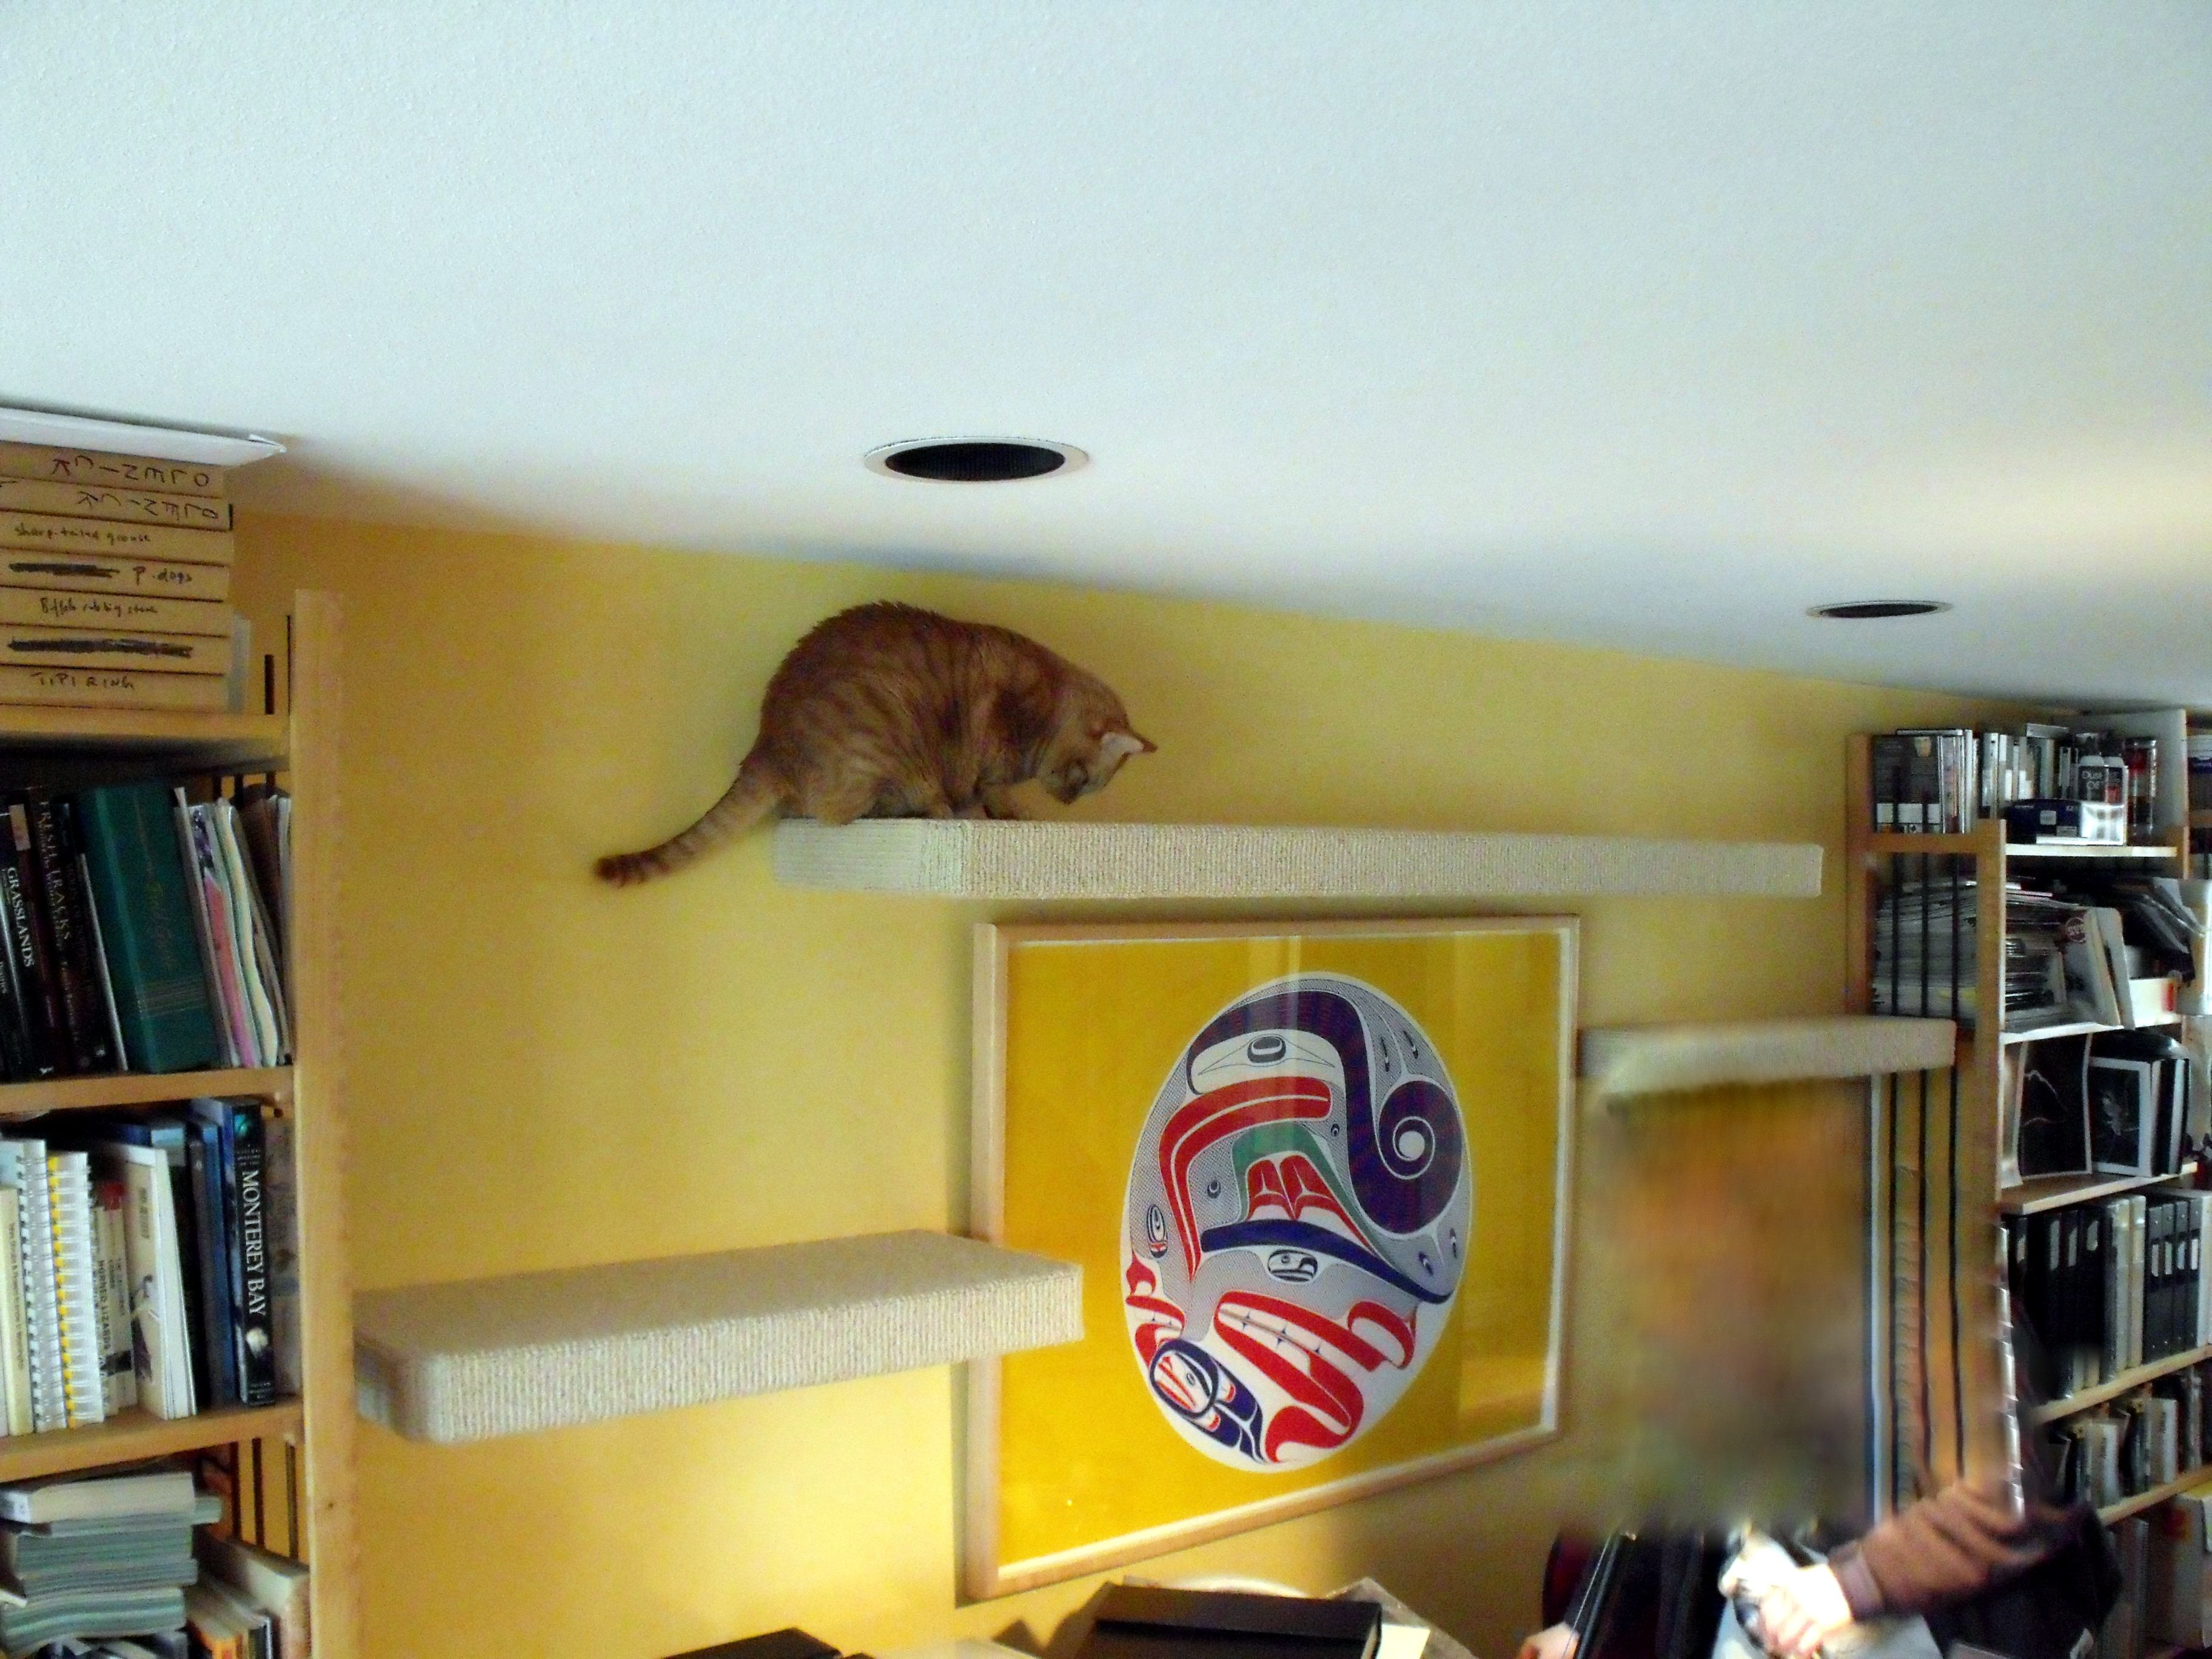 Carpeted Cat Shelves Beautiful World Living Environments Www.abeautifulwor.